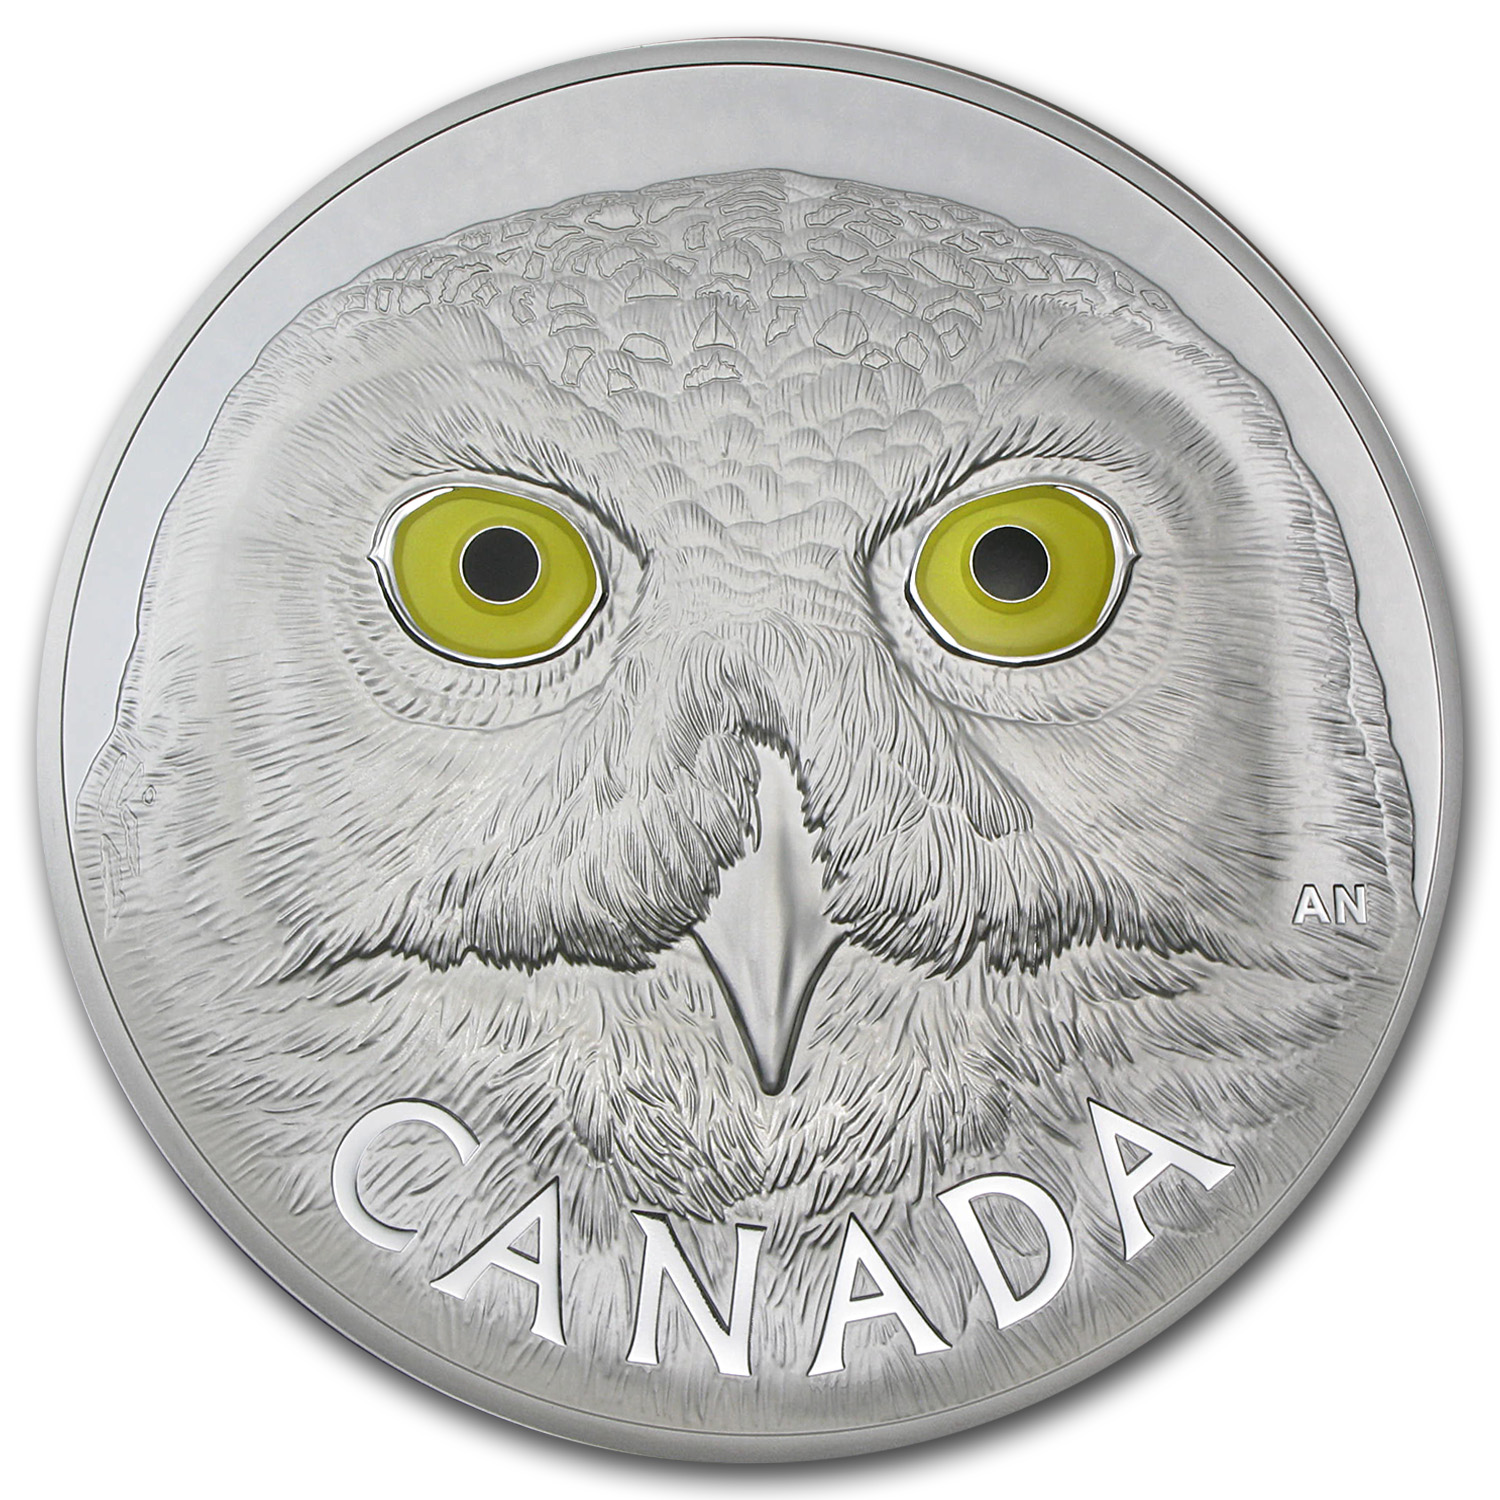 2014 Canada 1 kilo Silver $250 In the Eyes of the Snowy Owl